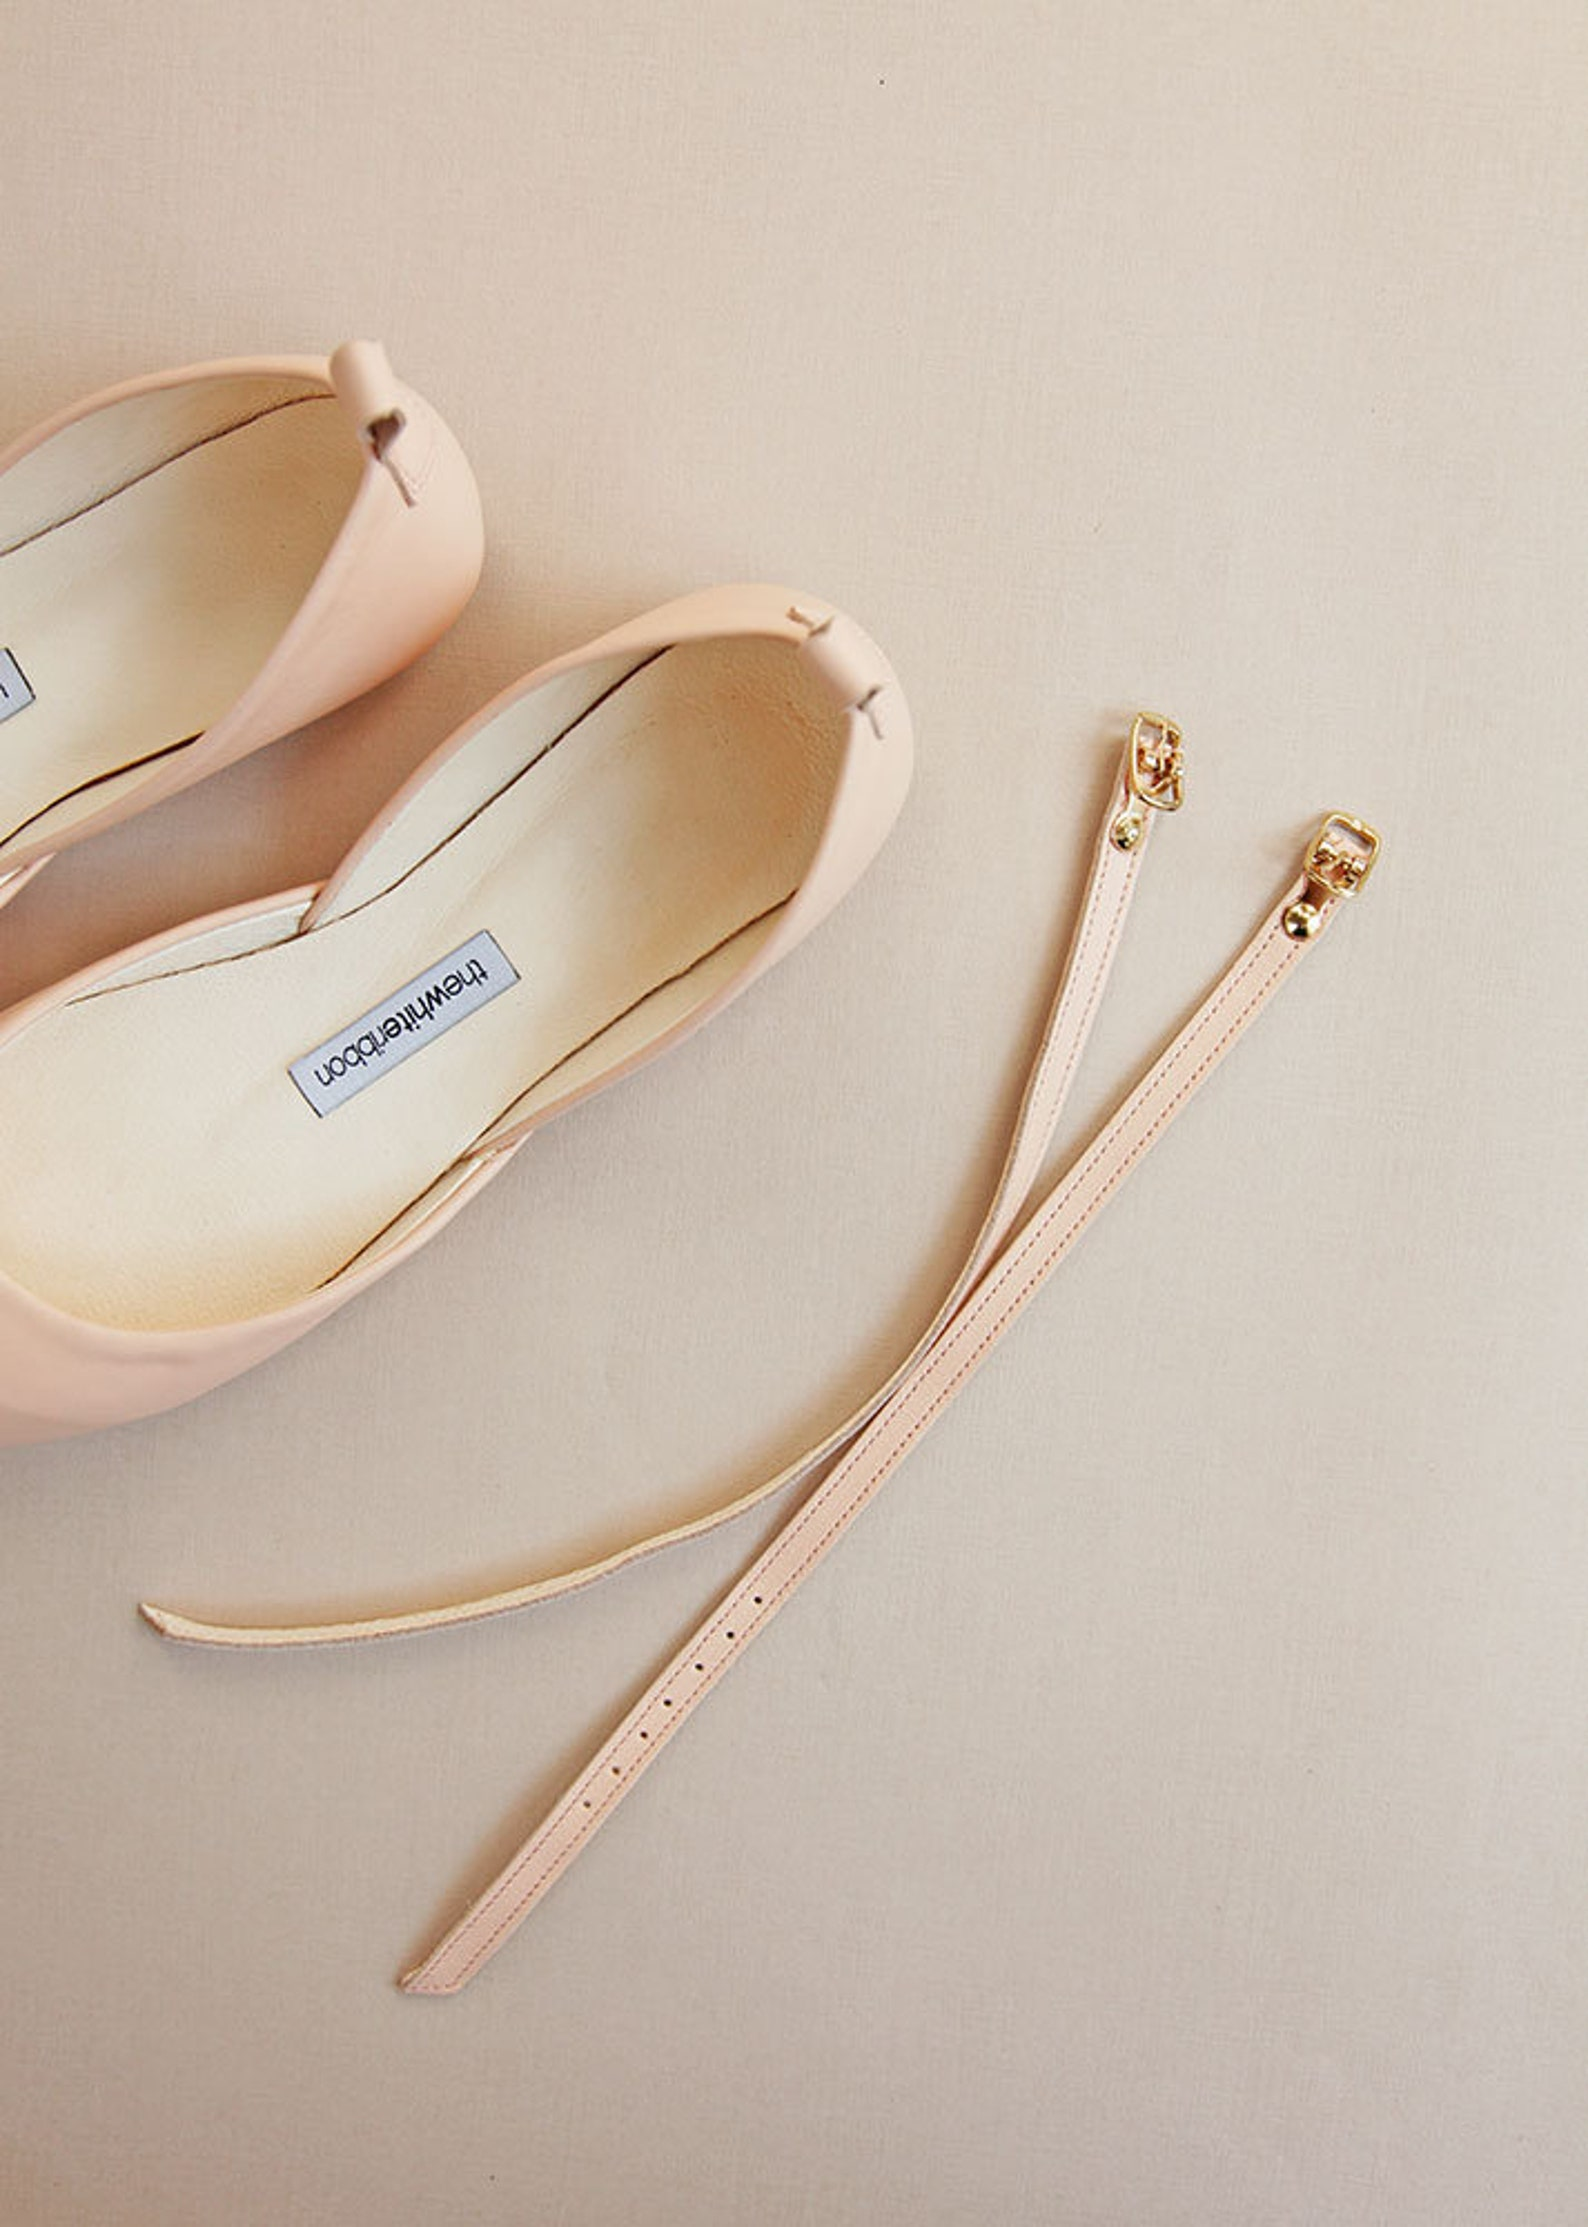 peach nude wedding ballet flats | bridal shoes with satin ribbons | leather ballet flats | peach nude with satin ribbons | ready